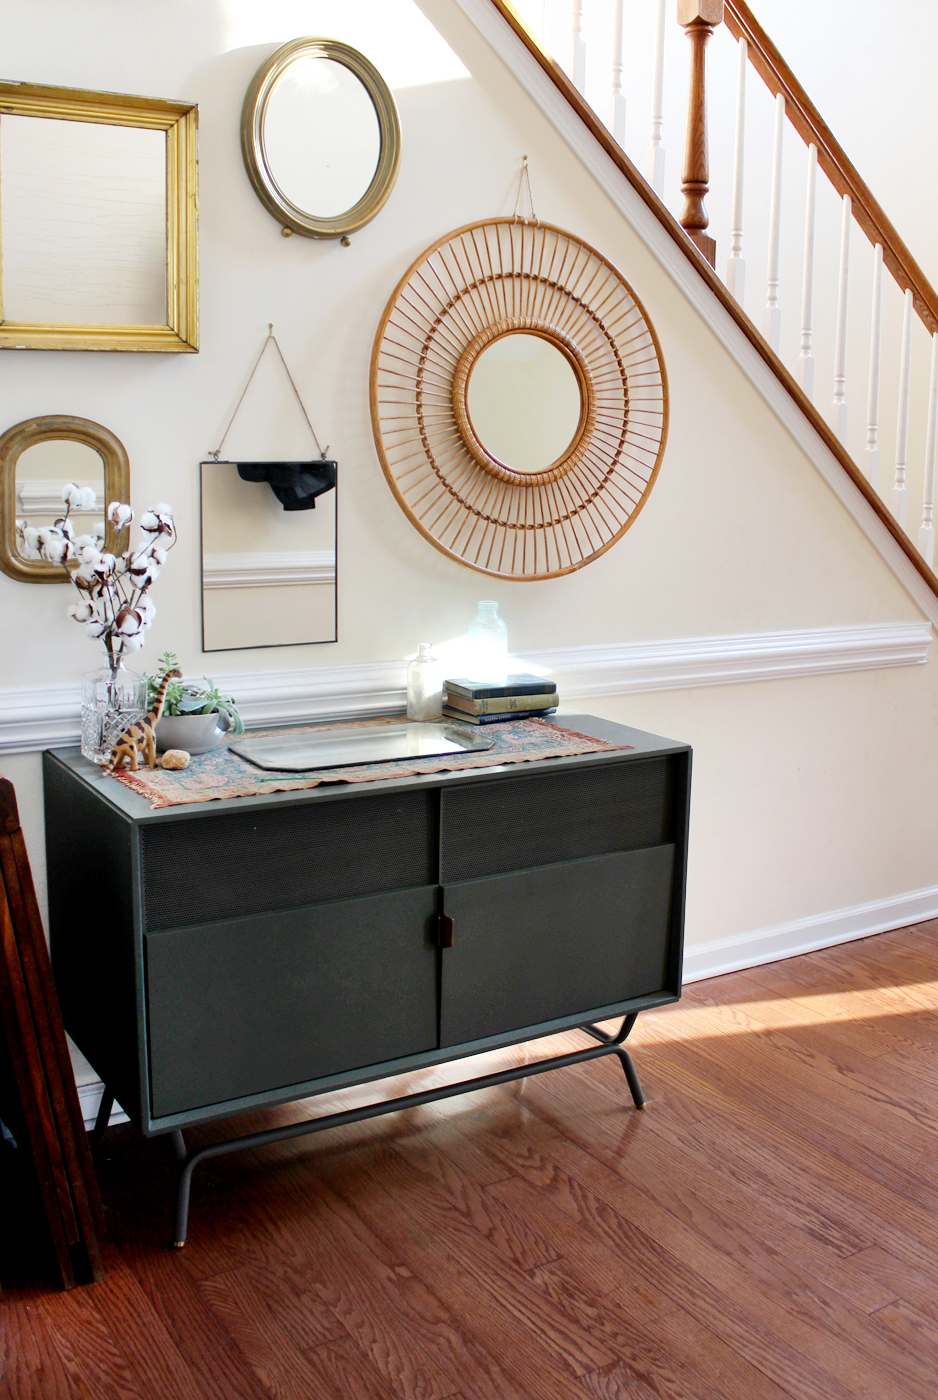 Make a gallery mirror wall: pick the perfect wall that will feel cozy